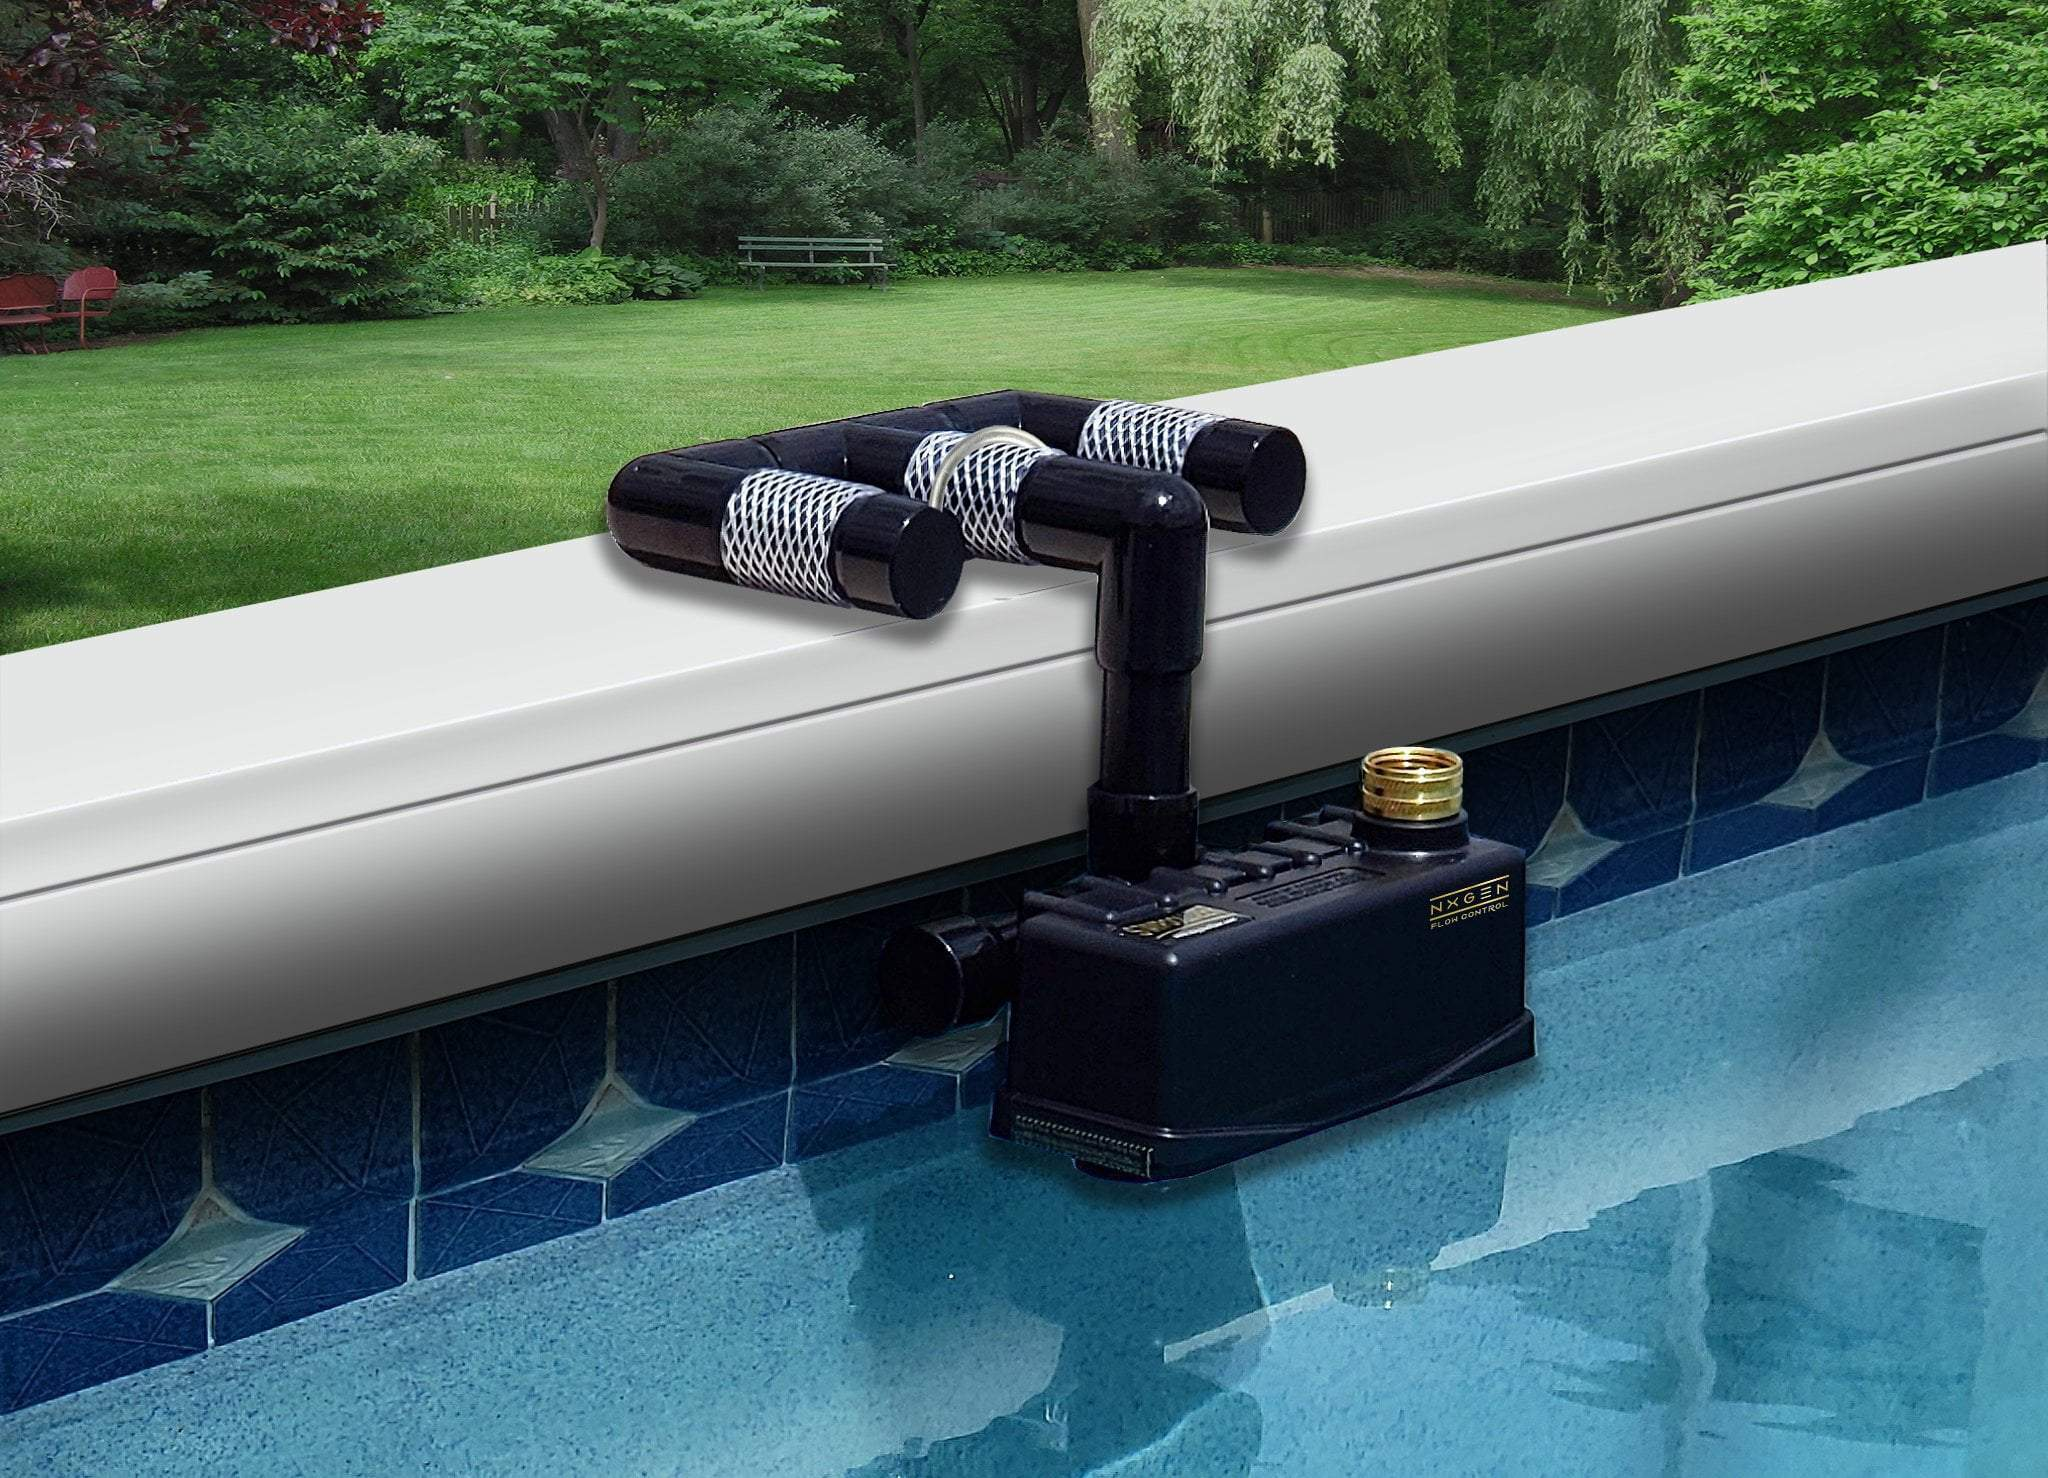 All Swimming Pools Universal Staypoollizer Universal Staypoollizer Premium with Nxgen Flow Control (Black)